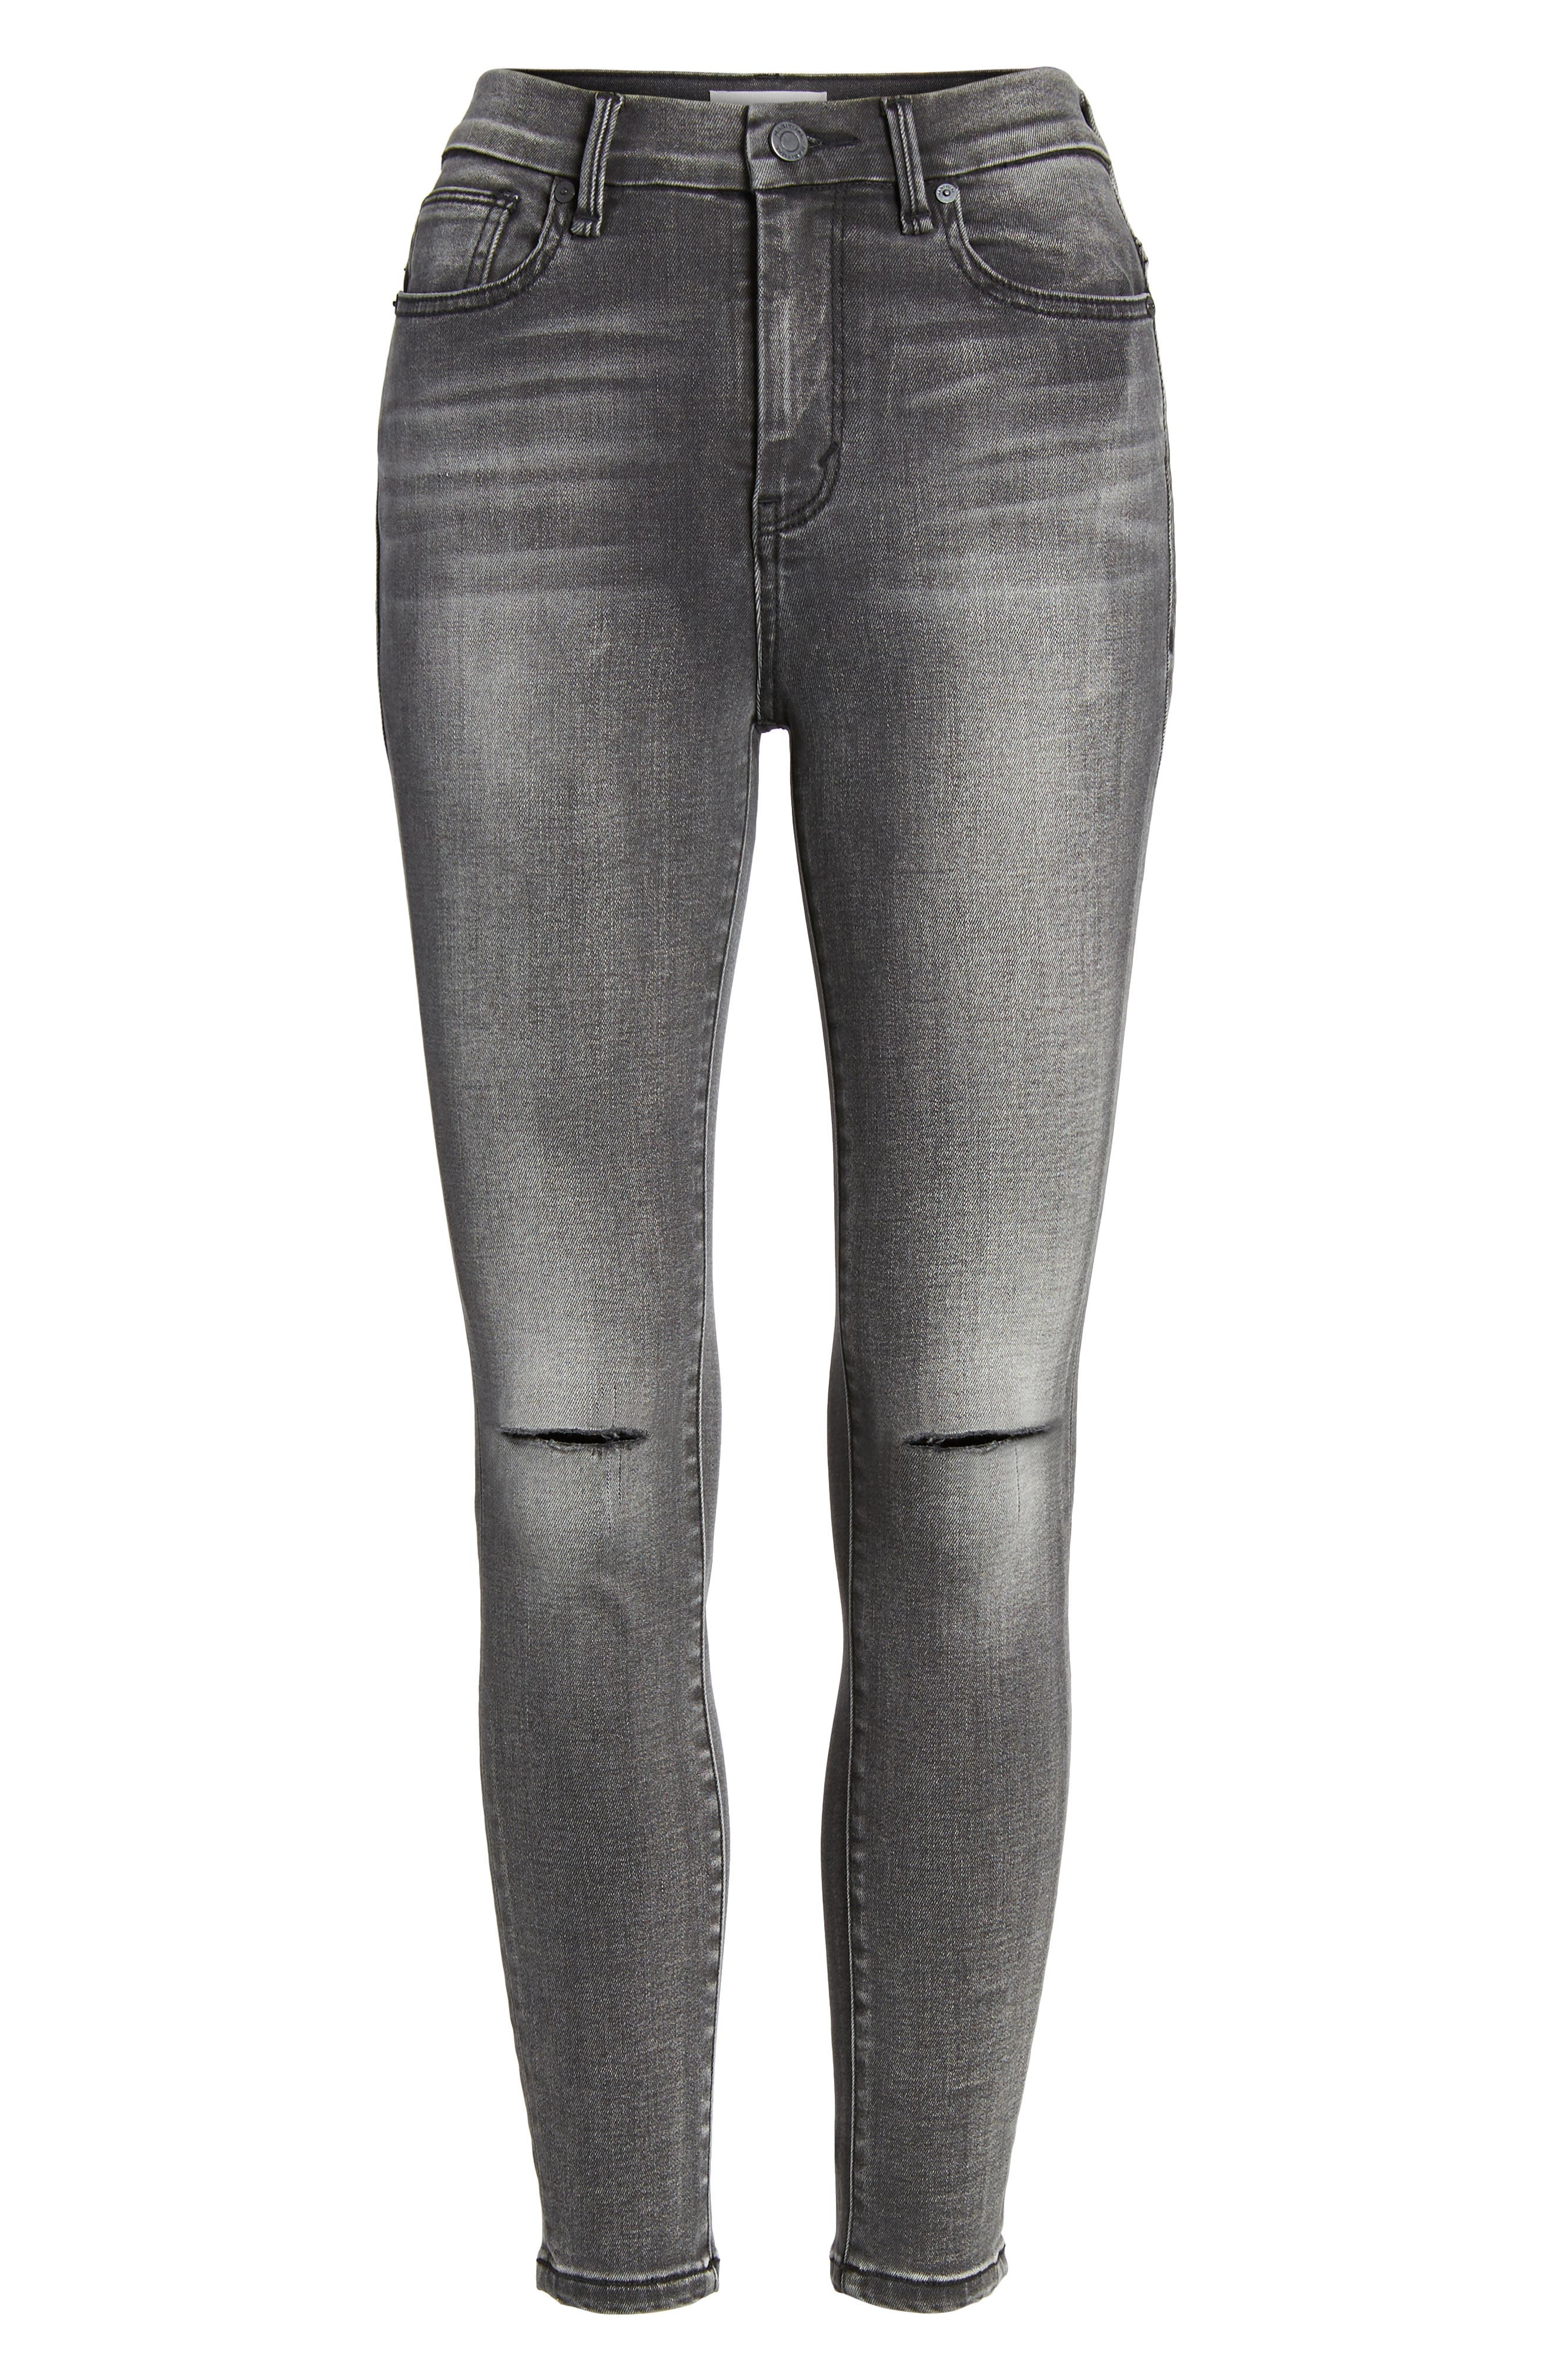 Cressa High Rise Ankle Skinny Jeans,                             Alternate thumbnail 7, color,                             022